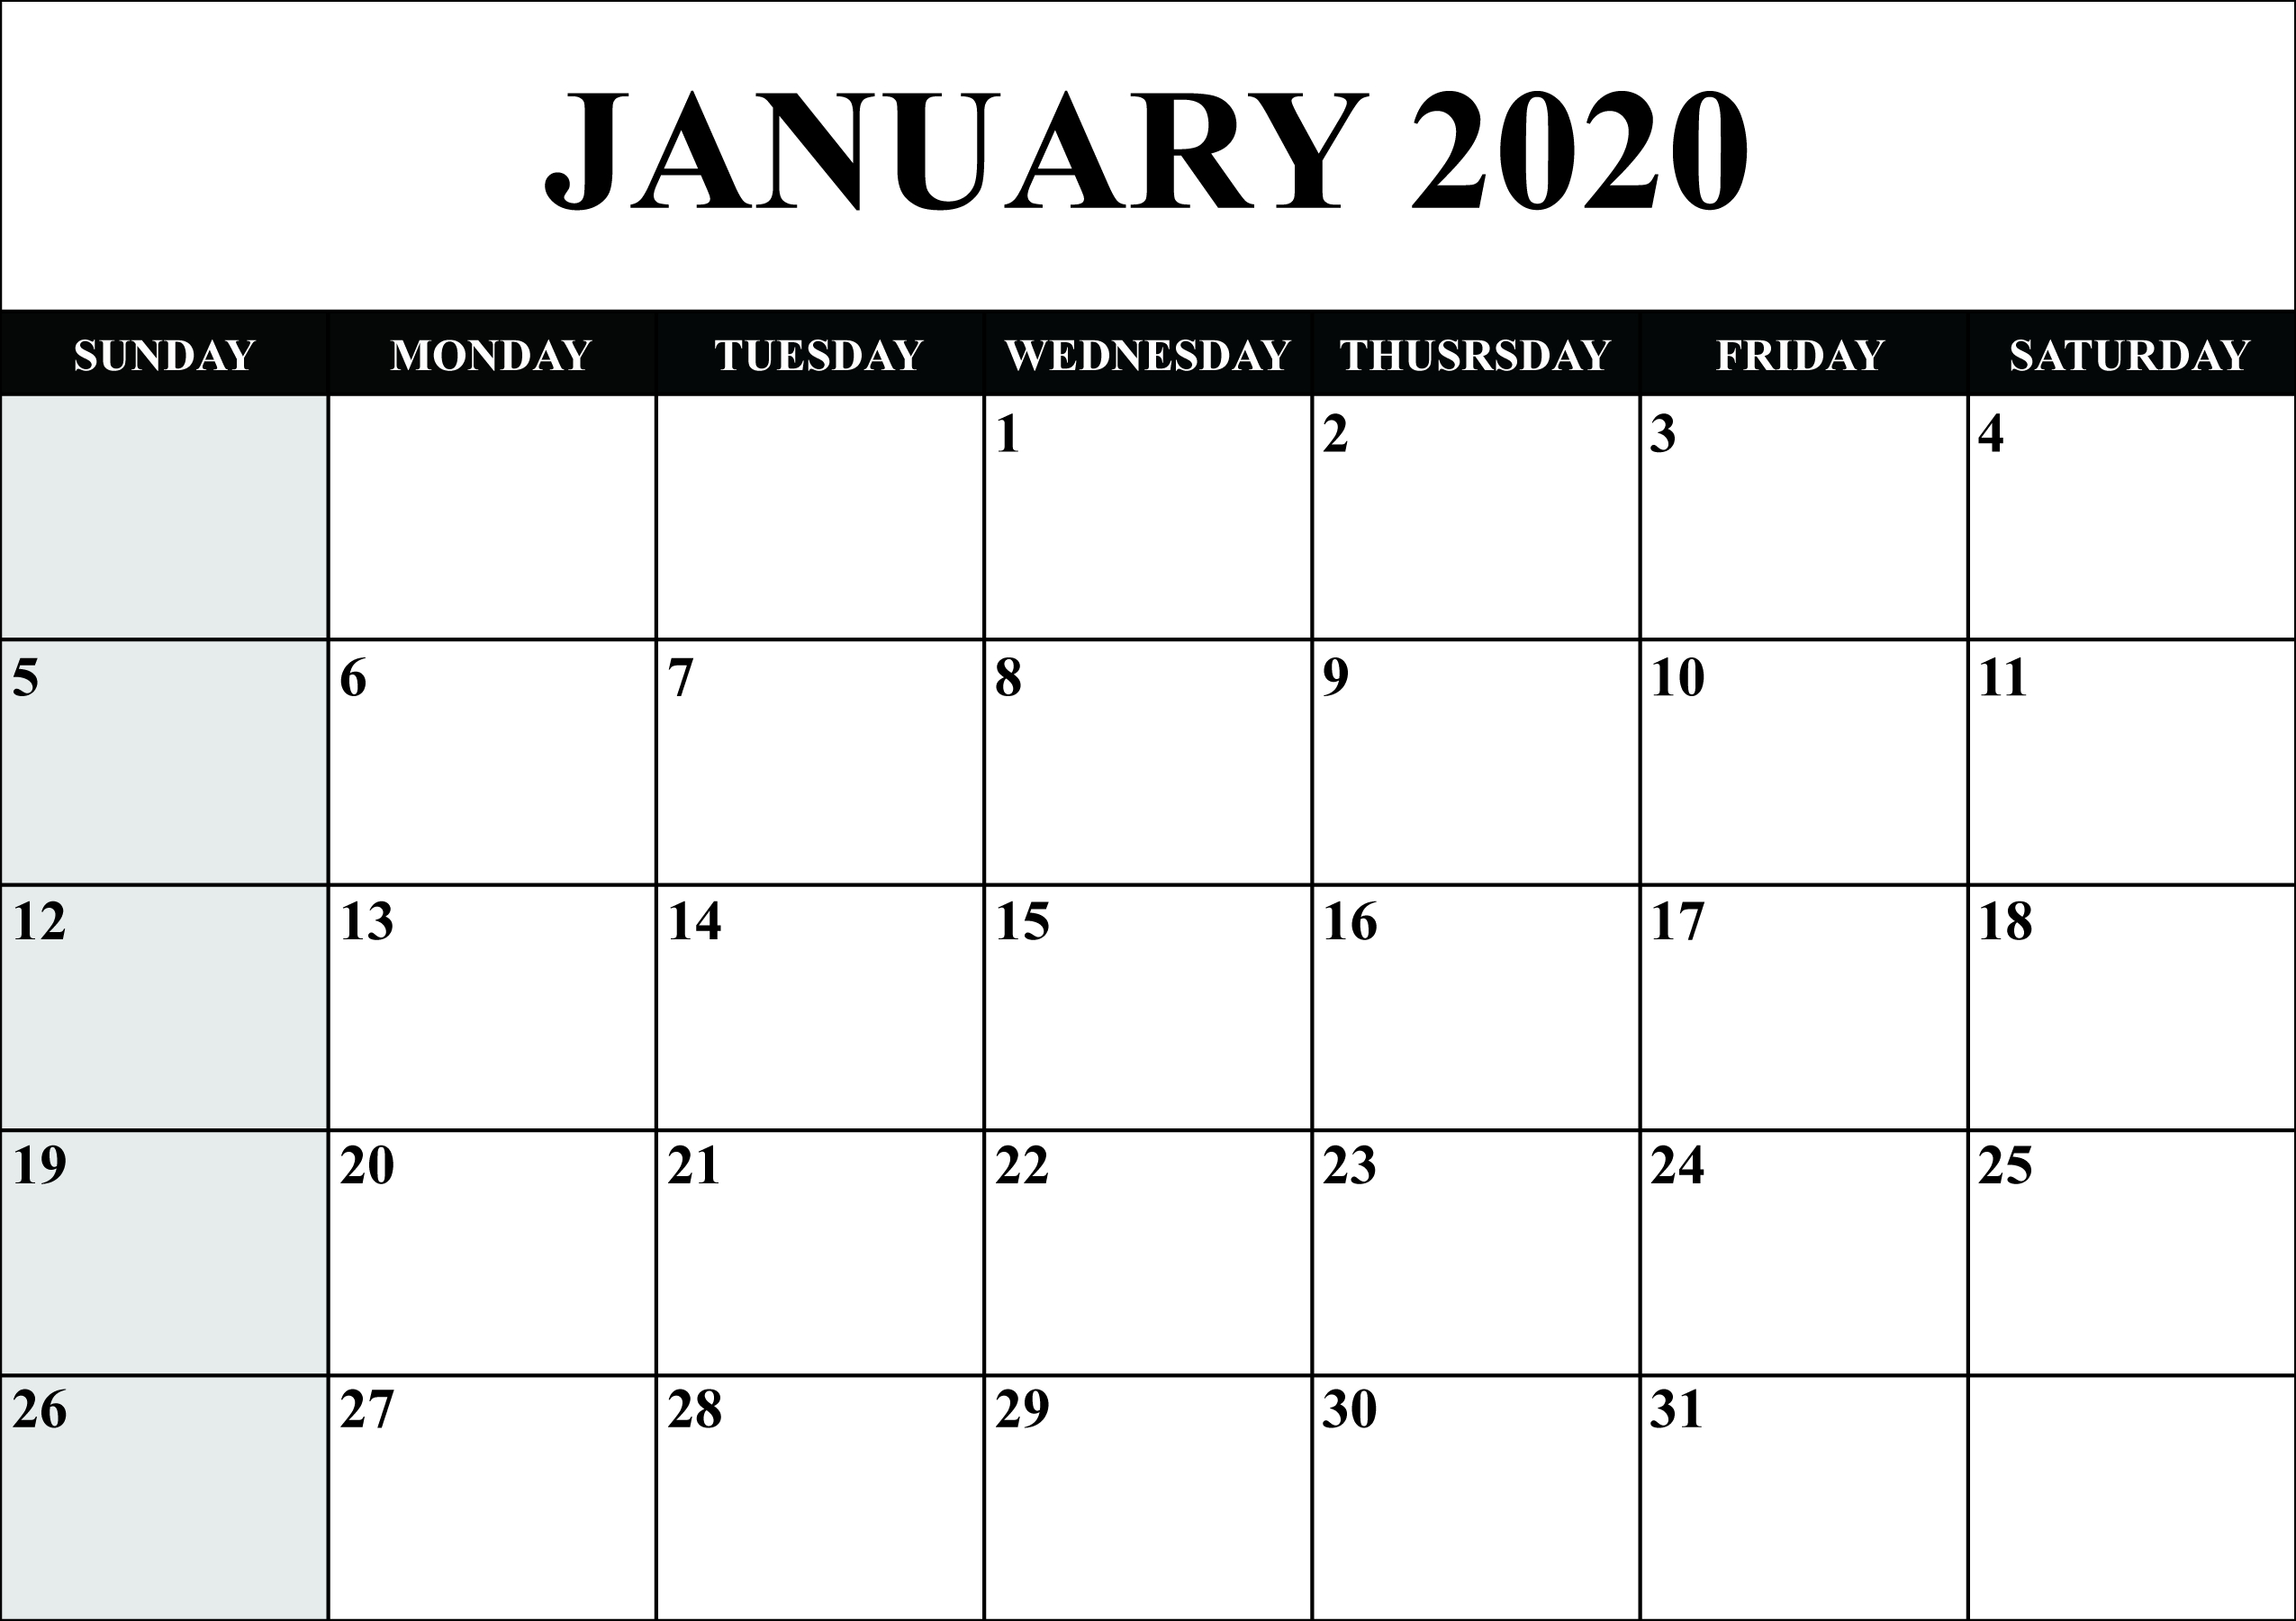 Free Blank January 2020 Calendar Printable In Pdf, Word, Excel intended for Blank 2020 Calendar Starting On Saturday Printable Free